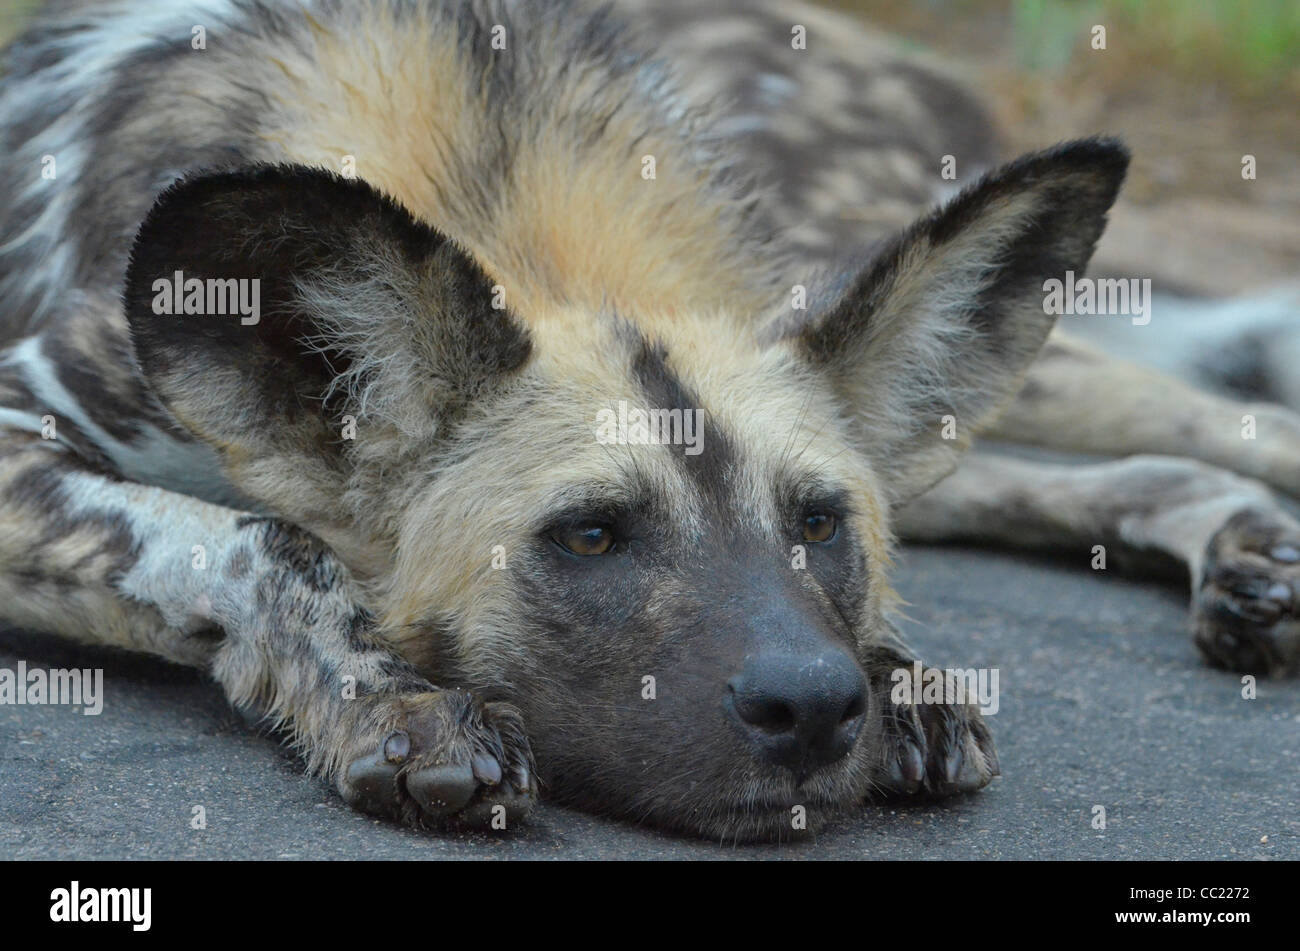 Kruger national Park in South Africa is world famous for do-it-yourself game viewing at affordable rates. Wild dog - Stock Image